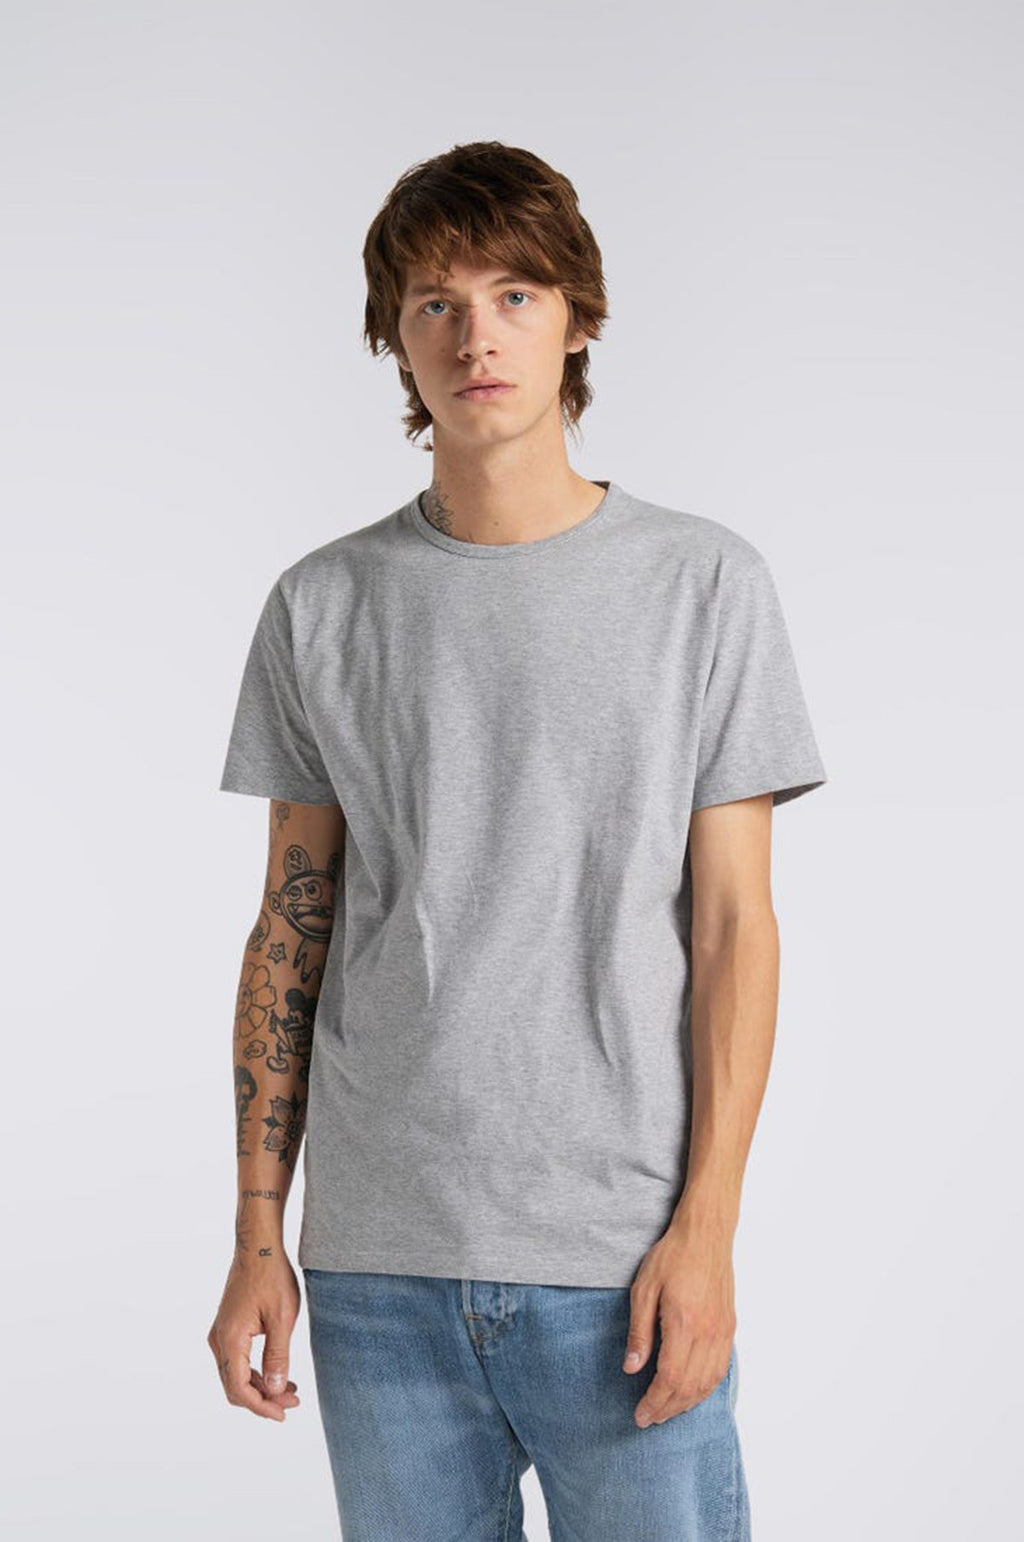 Double Pack Short Sleeve T Shirt in Grey Marl